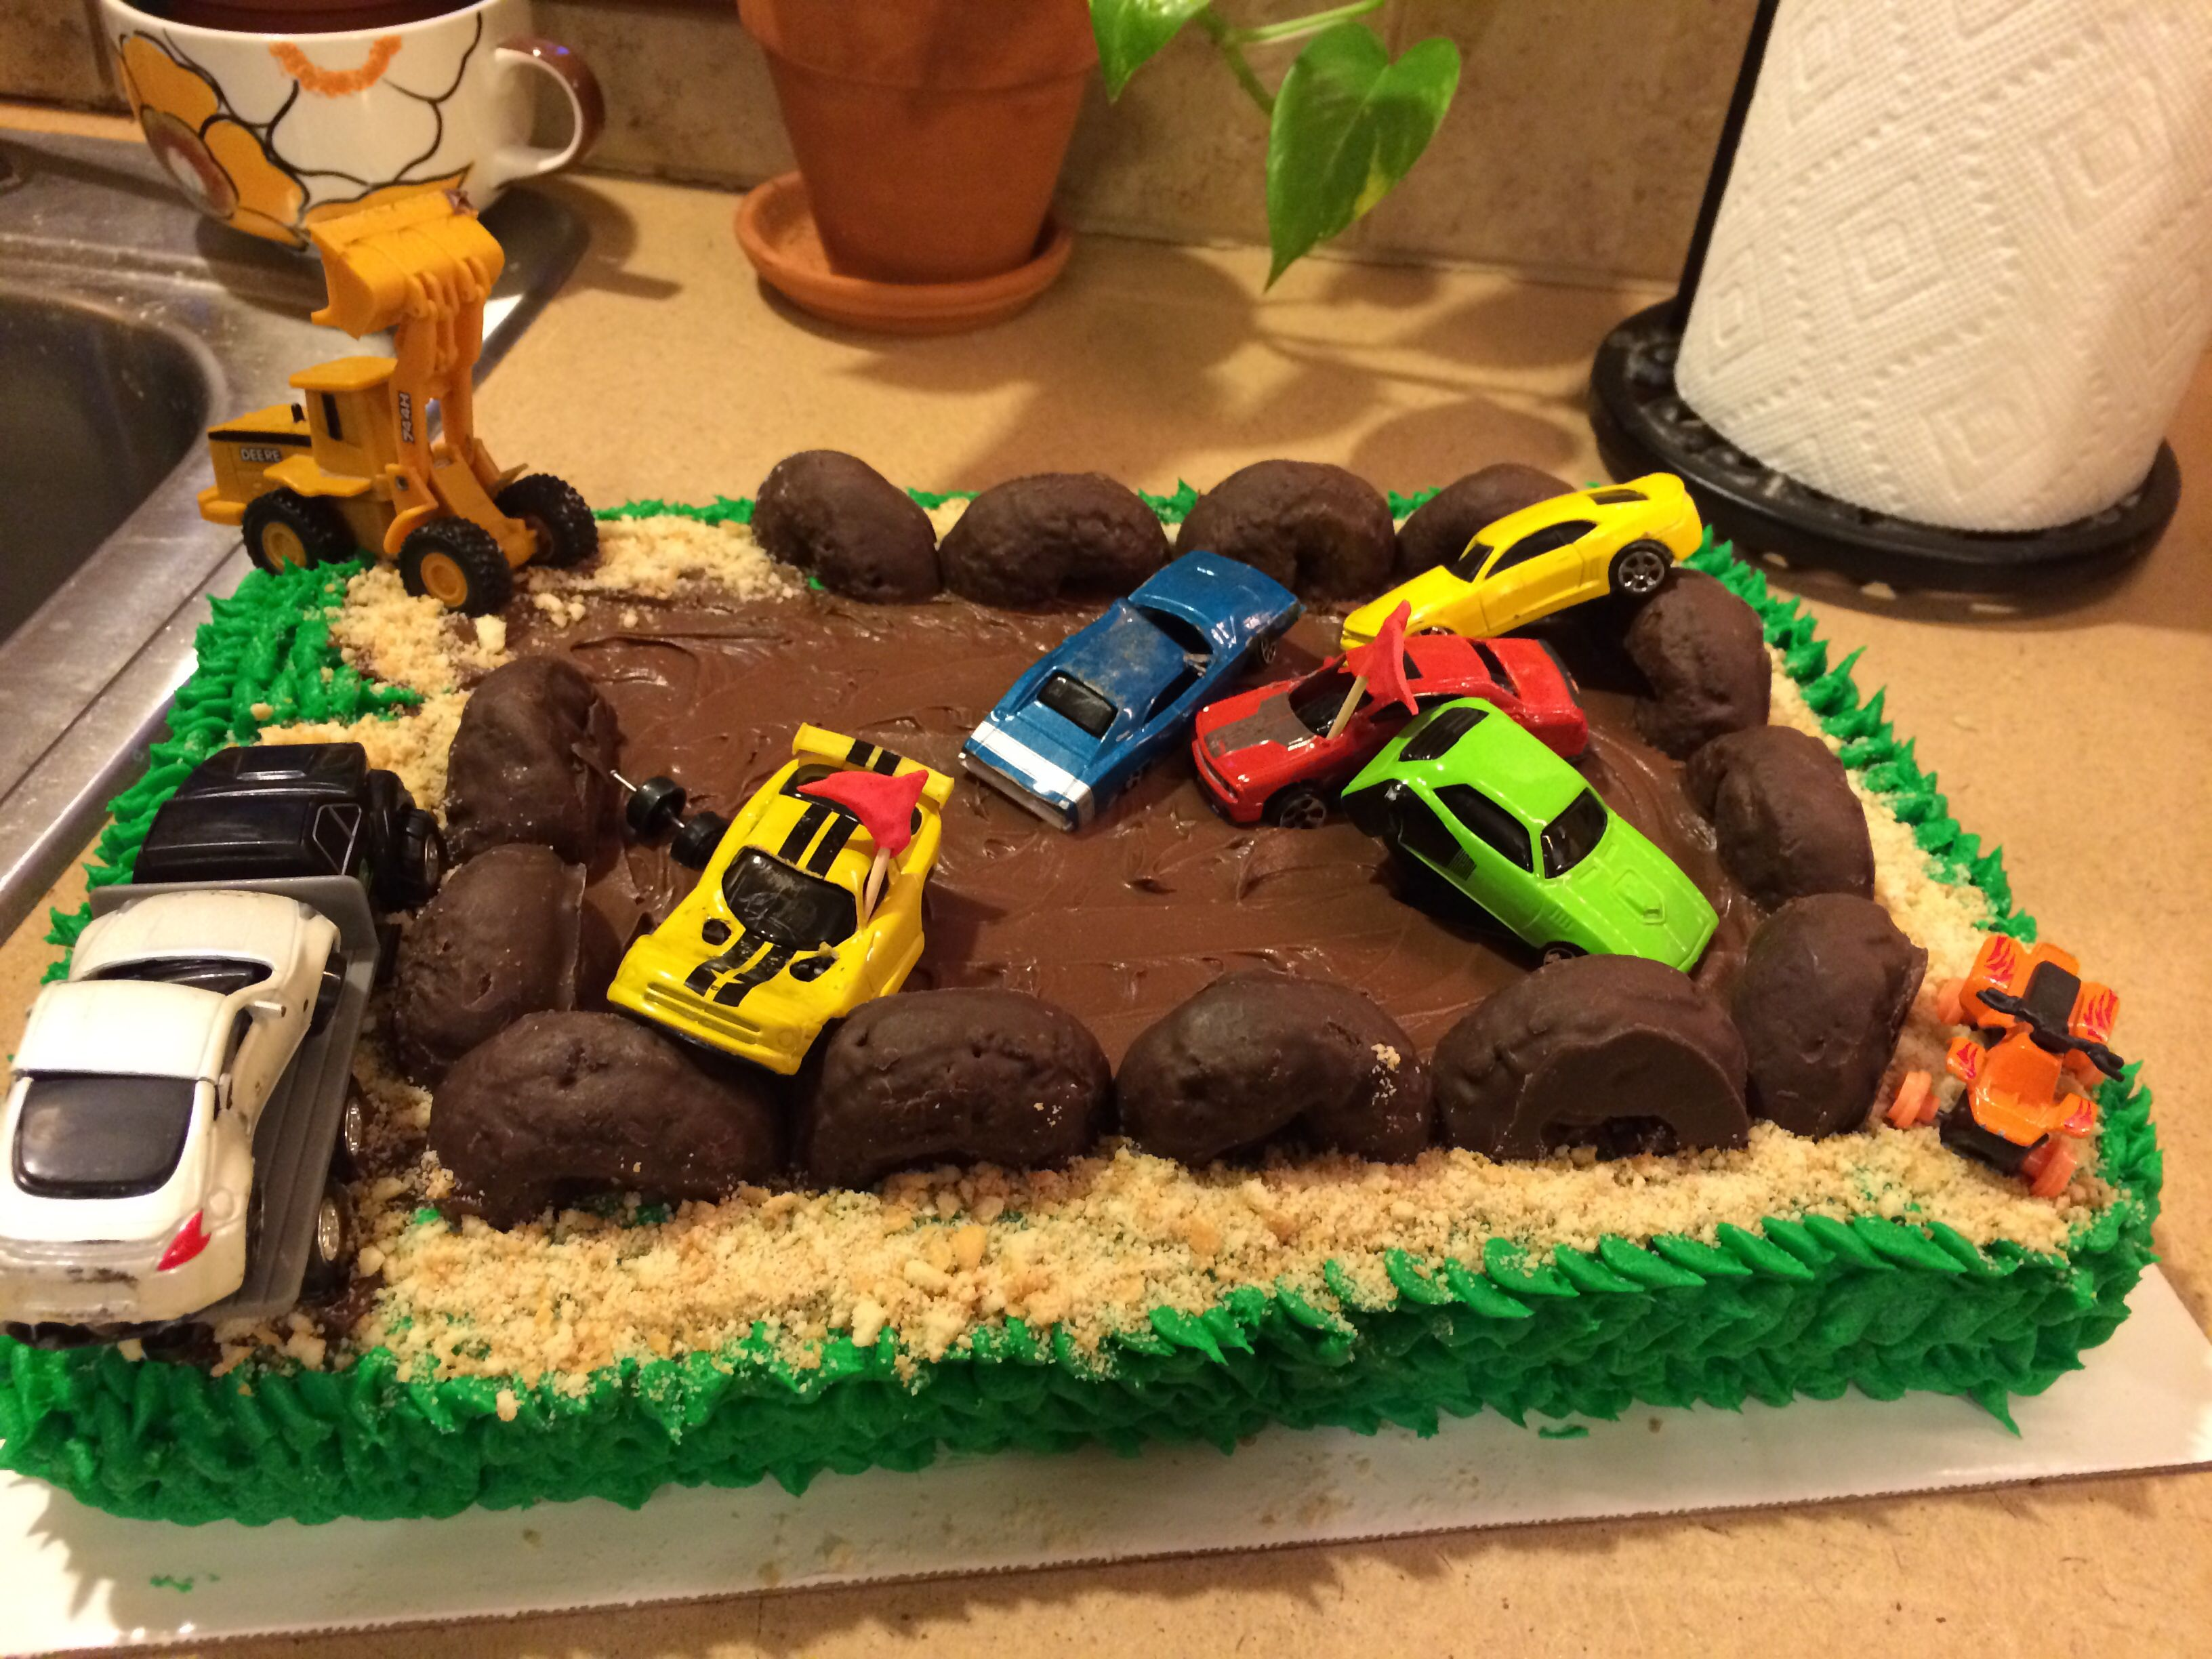 Demolition Derby Birthday Cake My Cakes Pinterest - Children's birthday parties derbyshire